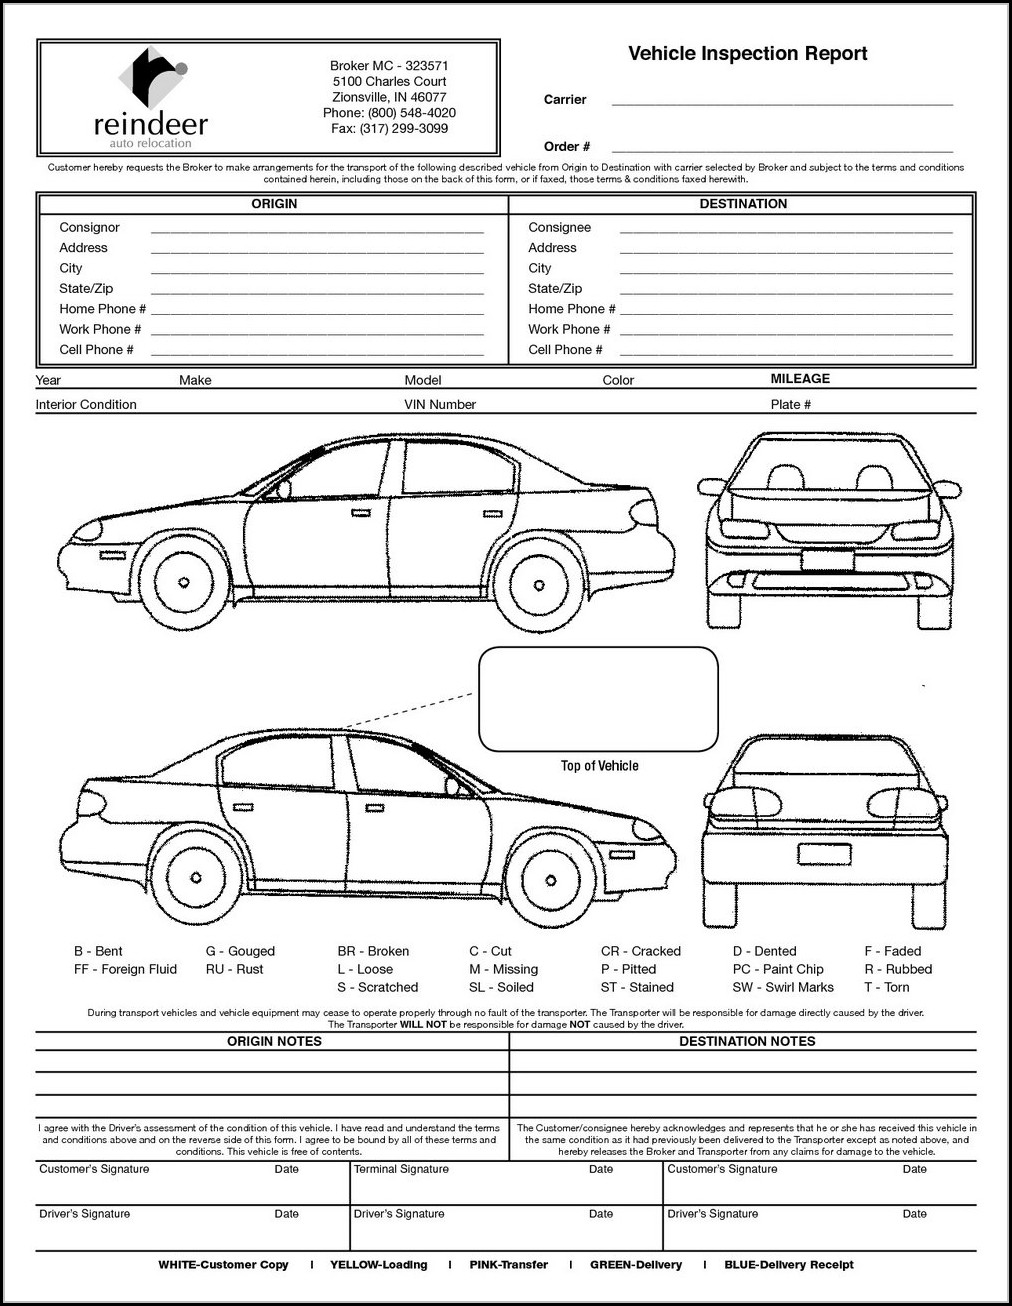 Vehicle Inspection Form Template Free